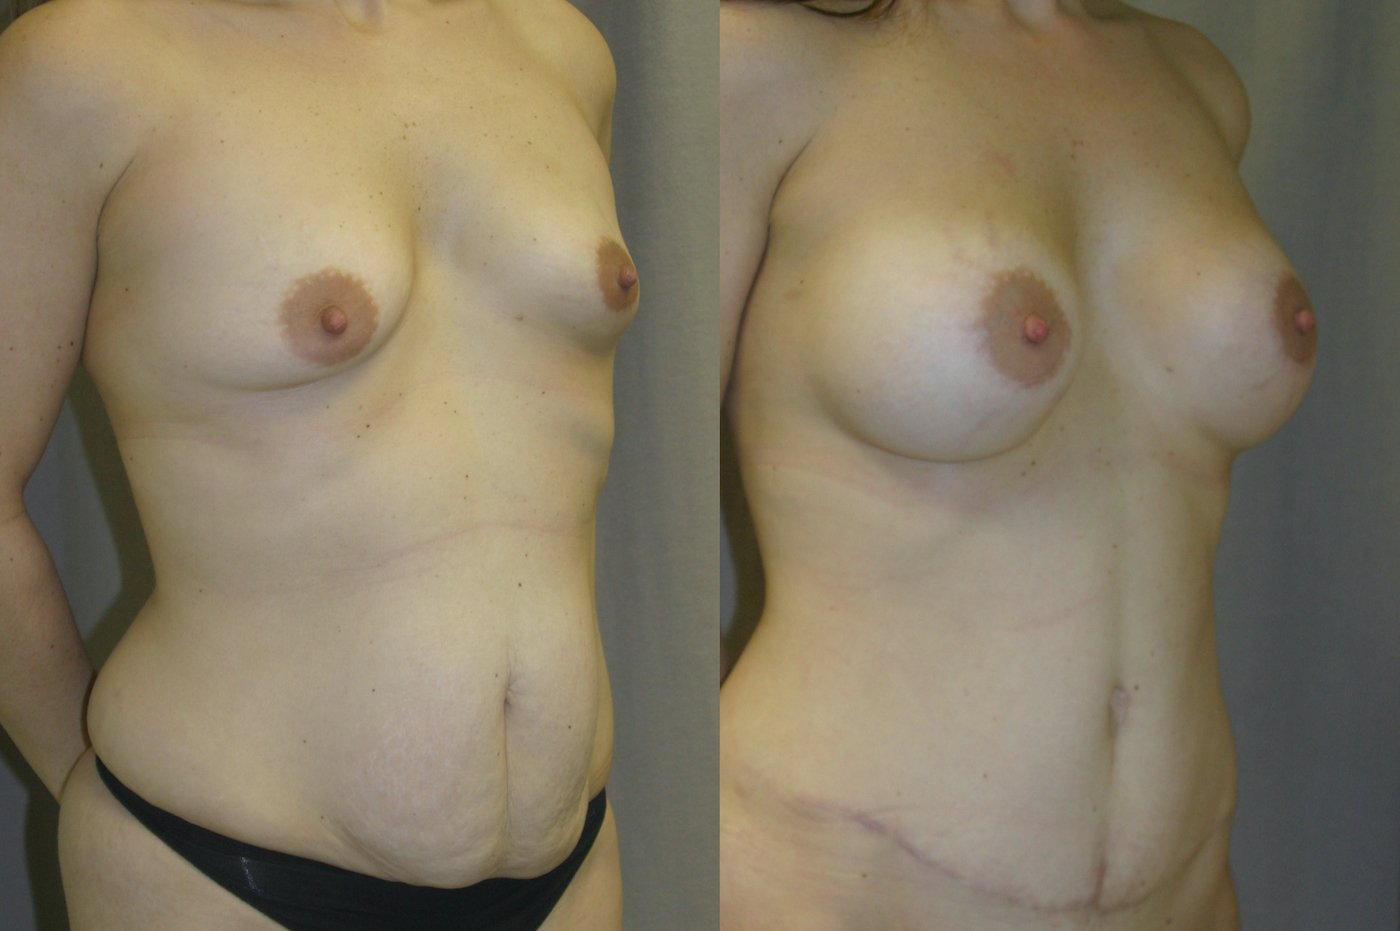 36-year-old Mommy Makeover, Breast Augmentation and Tummy Tuck 6 months after surgery, oblique view